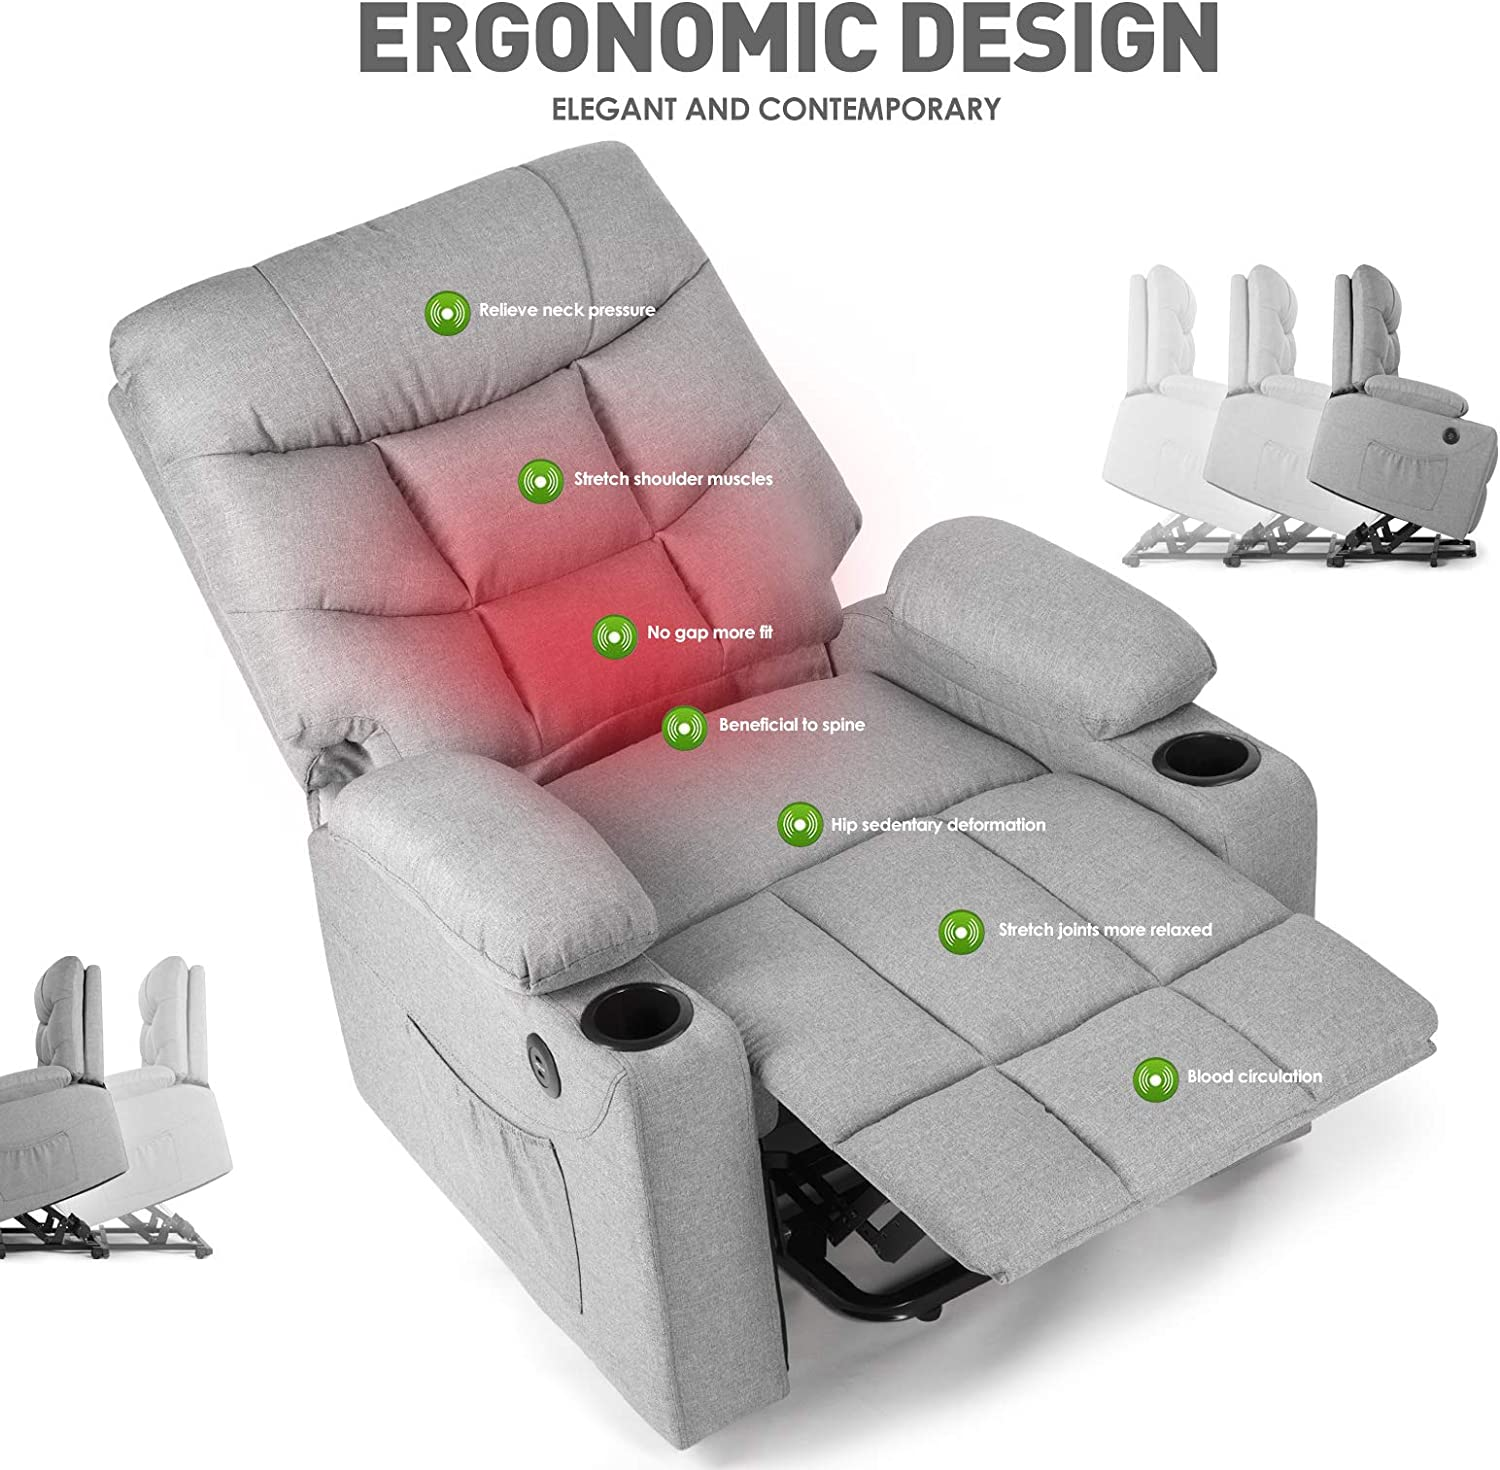 Zero Gravity Microfiber Ergonomic Living Room Sofa with Heated Control Home Theater Seating Fit for Office Nap Artist Hand 8 Point Massage Recliner Lounge Chair Beige